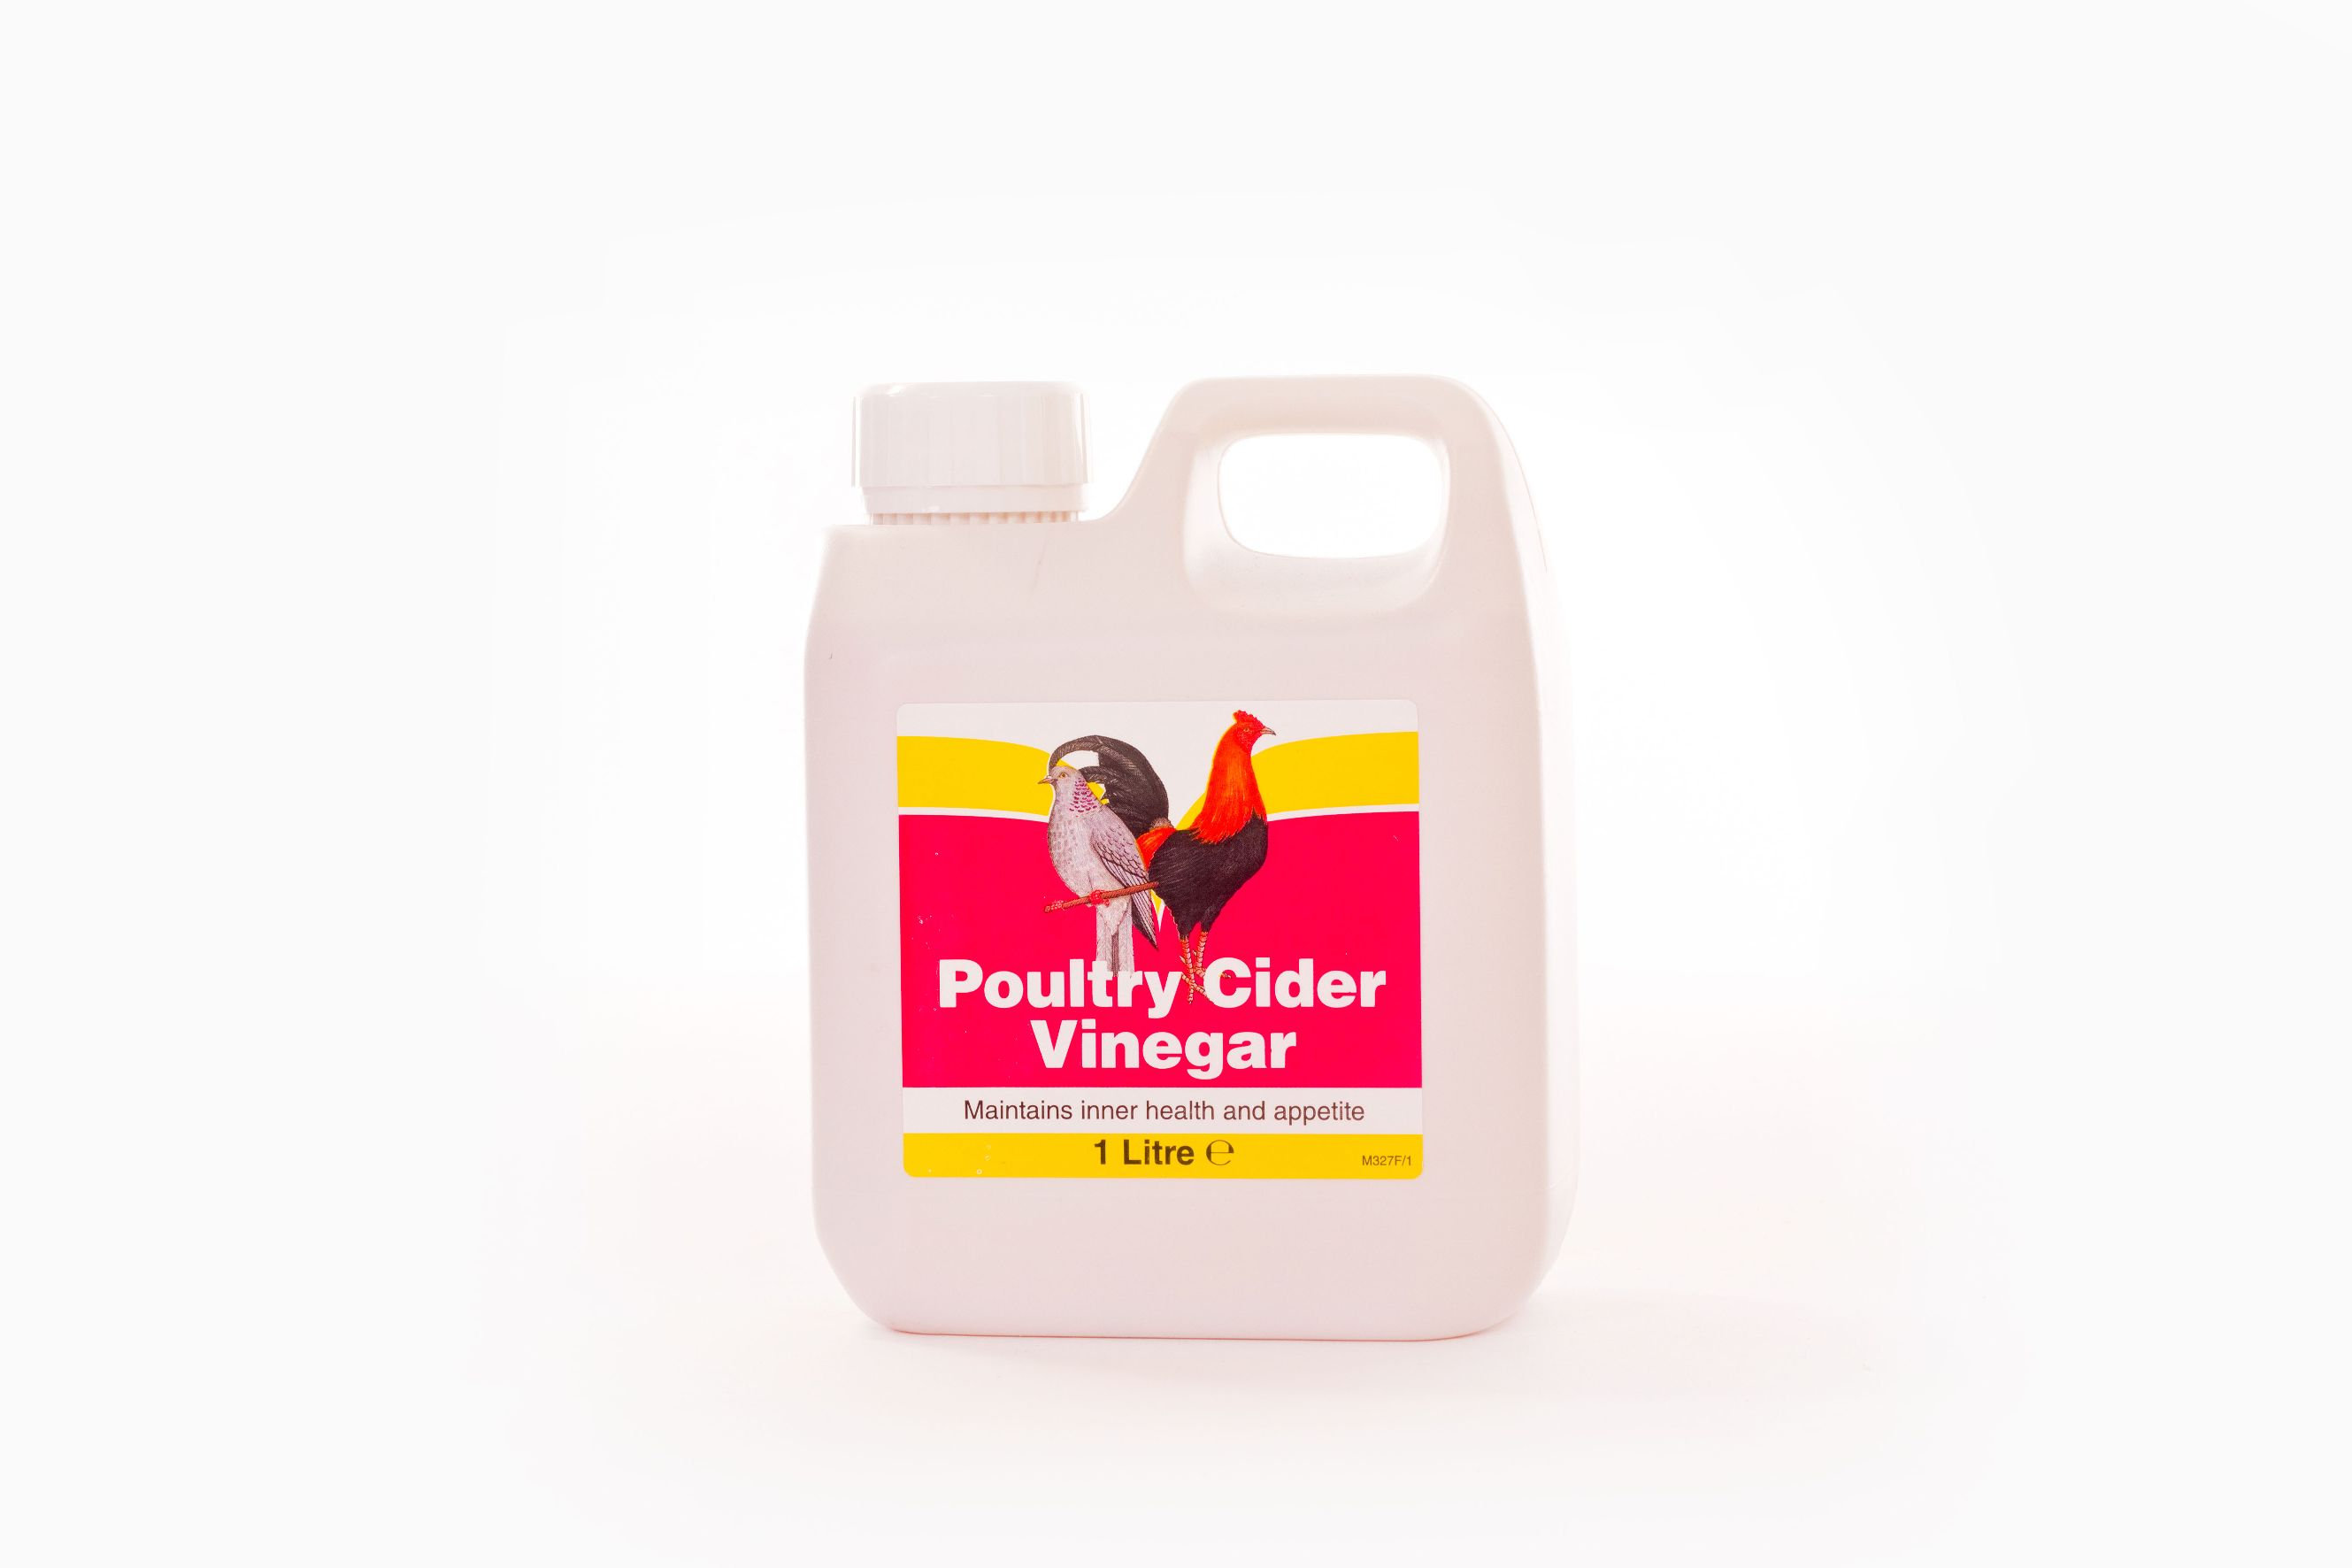 Battles Cider Vinegar for Poultry